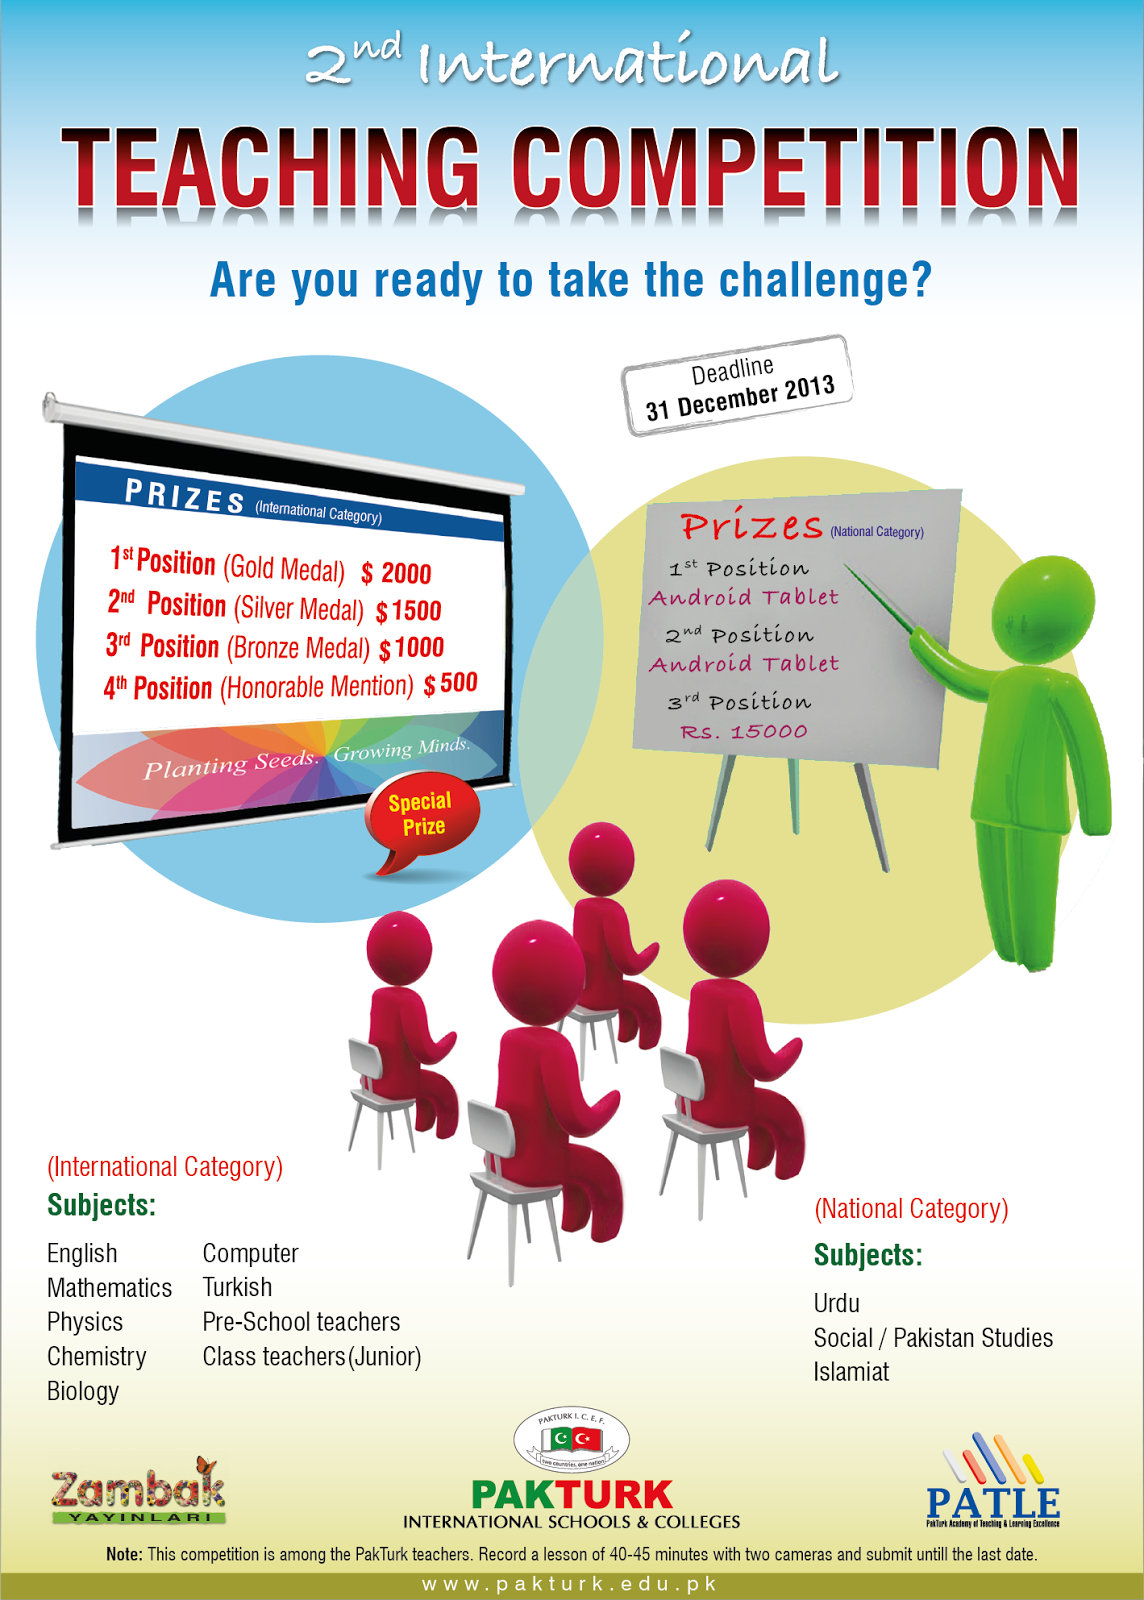 2nd International Teaching Competition